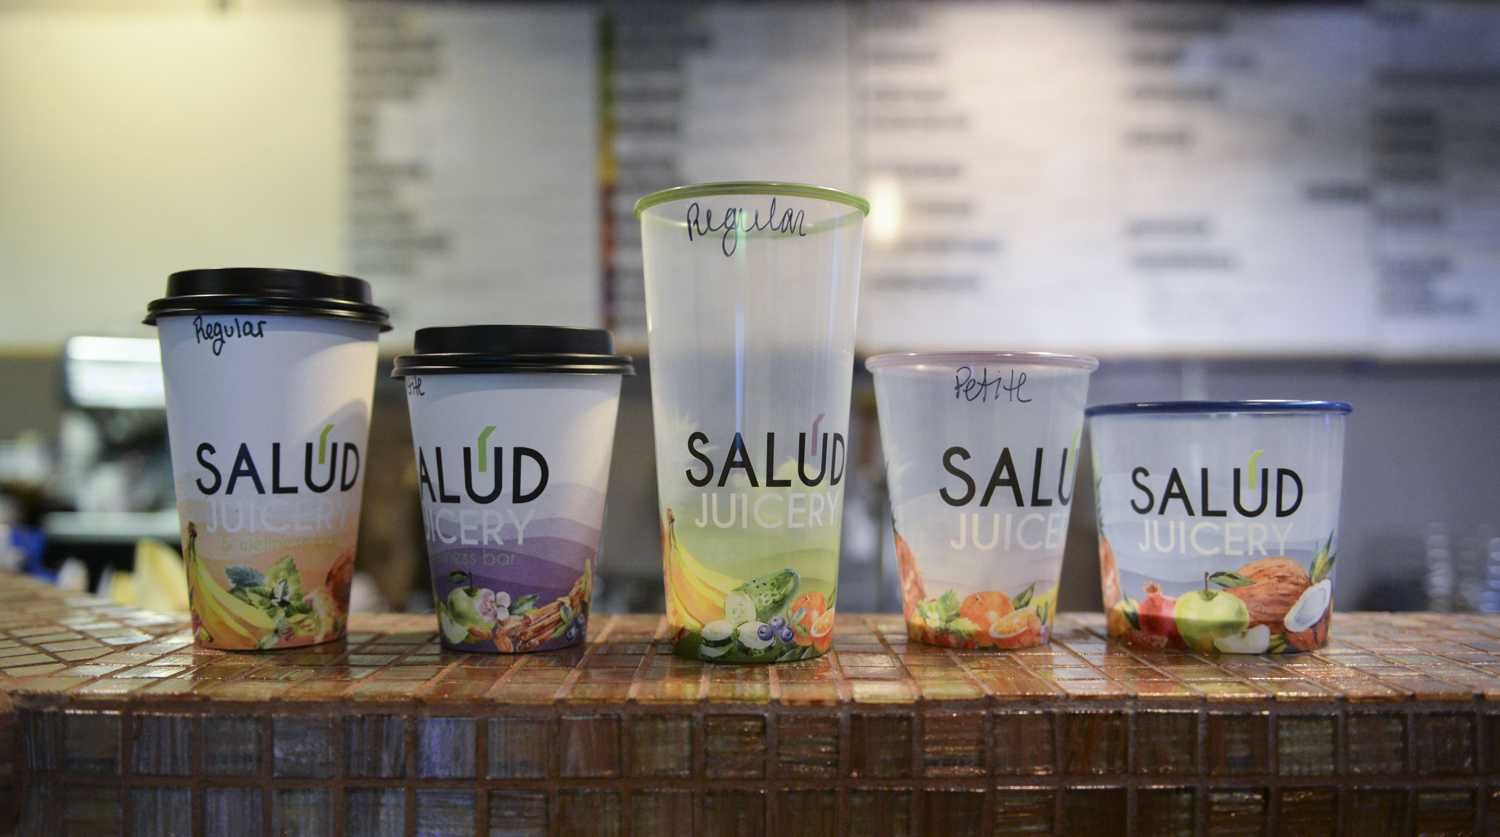 Salud Juicery has everything from nourishing juices and smoothies, to hot drinks and wellness shots, and fresh, blended acai bowls. (Photo by Issi Glatts | Assistant Visual Editor)